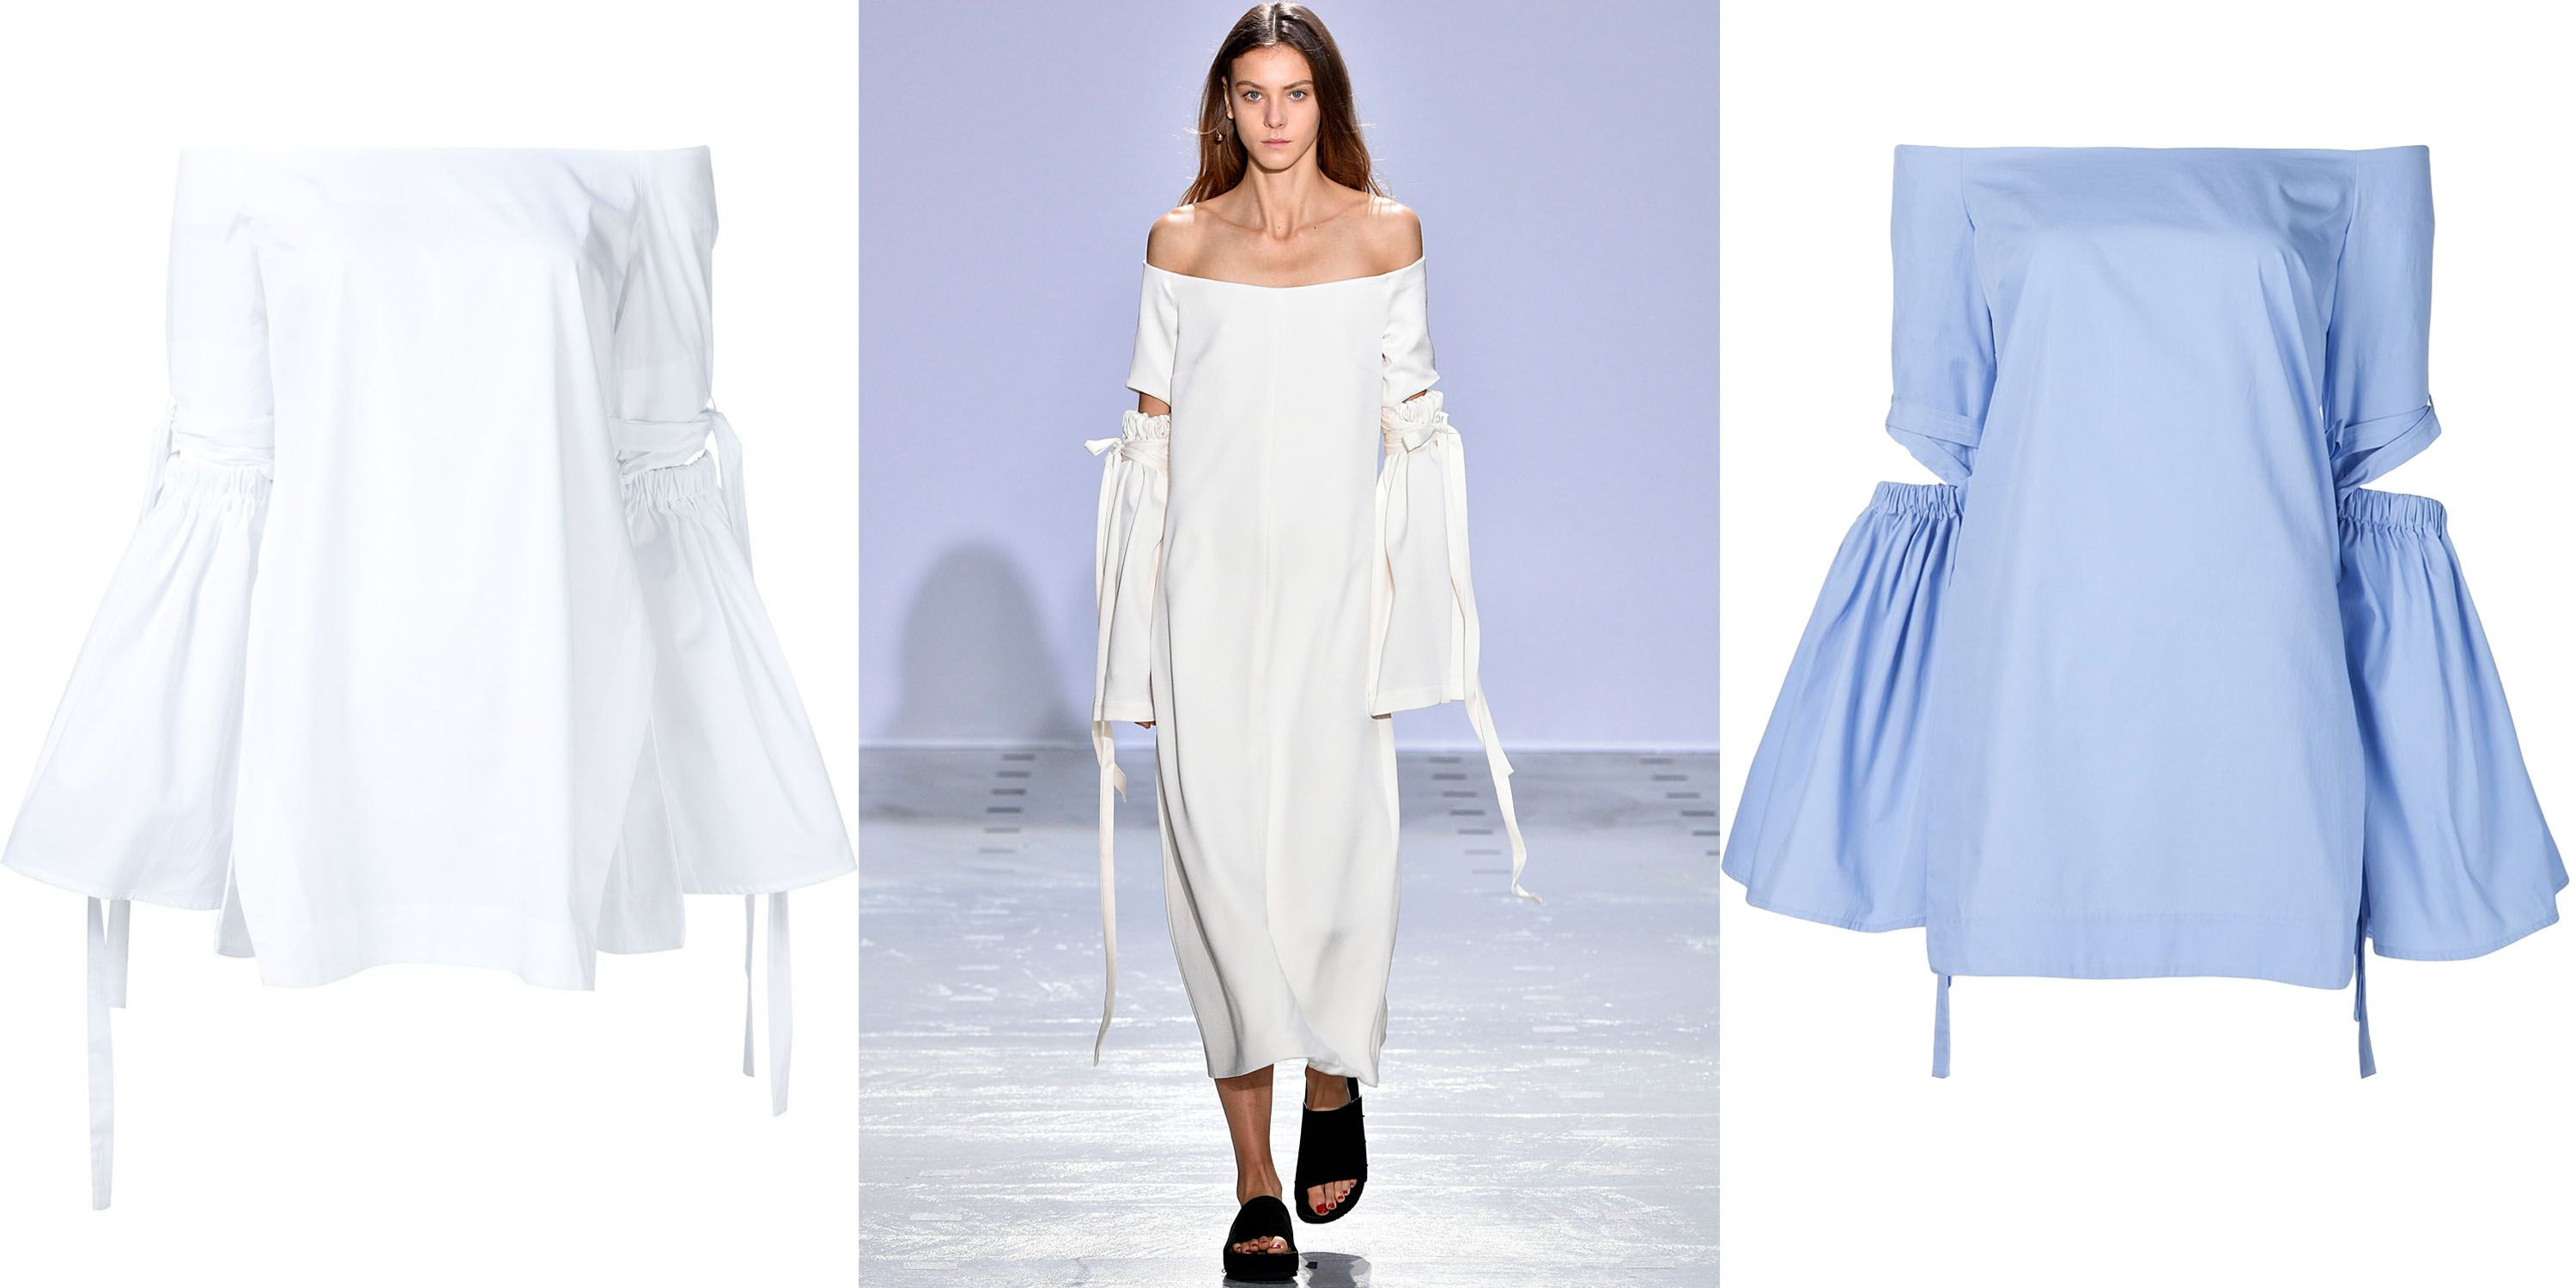 "<p>The most effortless way to show some skin this season is with an off-the-shoulder top. Opt for one with some additional detail to ensure you stand out from the crowd.</p><p><em><strong>Ellery</strong> off-the-shoulder top in white, $700, <strong><a href=""https://shop.harpersbazaar.com/designers/e/ellery/off-shoulder-elbow-cut-top-9008.html"" target=""_blank"">shopBAZAAR.com</a></strong>; <strong>Ellery</strong> off-the-shoulder top in blue, $700, <strong><a href=""https://shop.harpersbazaar.com/designers/e/ellery/off-shoulder-elbow-cut-top-blue-8989.html"" target=""_blank"">shopBAZAAR.com</a></strong>. </em></p>"